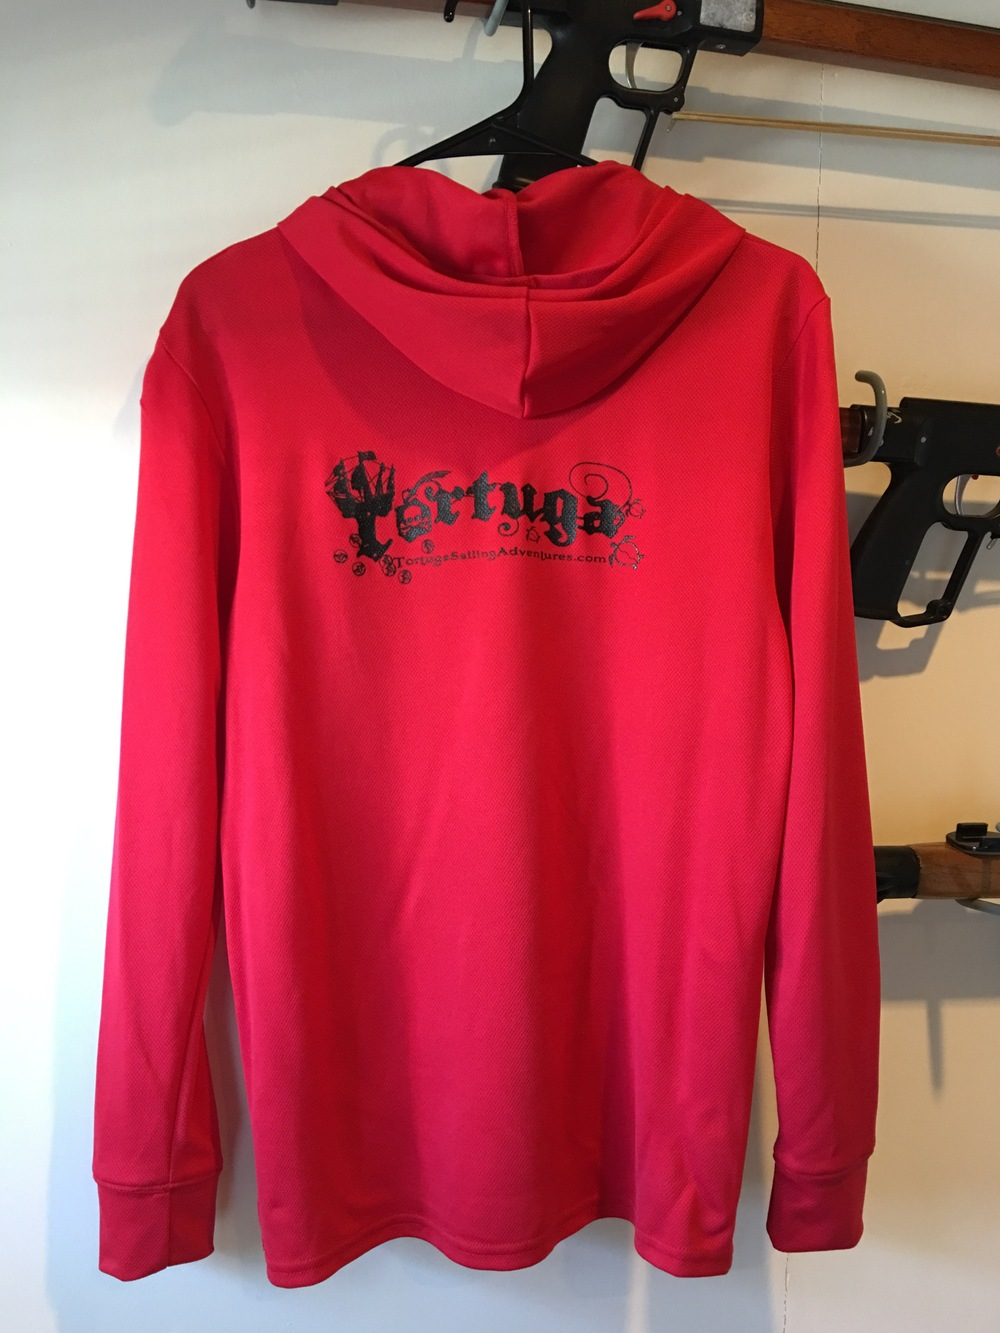 Dry shirt, lS hooded red w/blk logo  $46